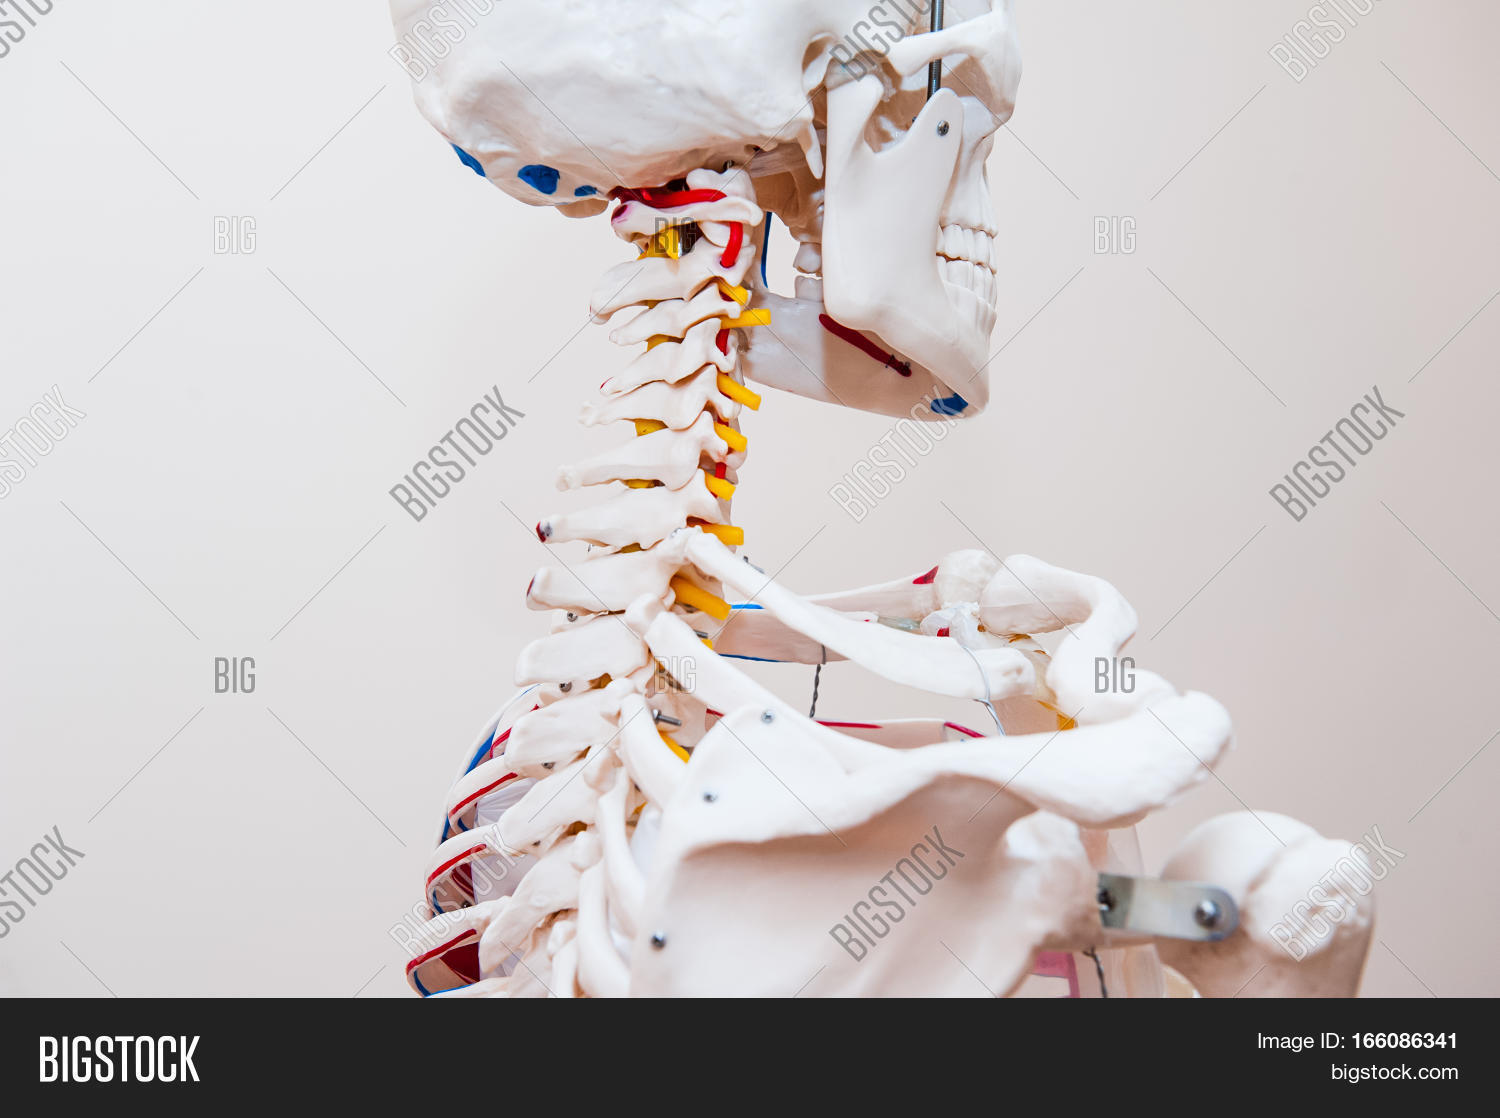 Close Side View Human Image Photo Free Trial Bigstock